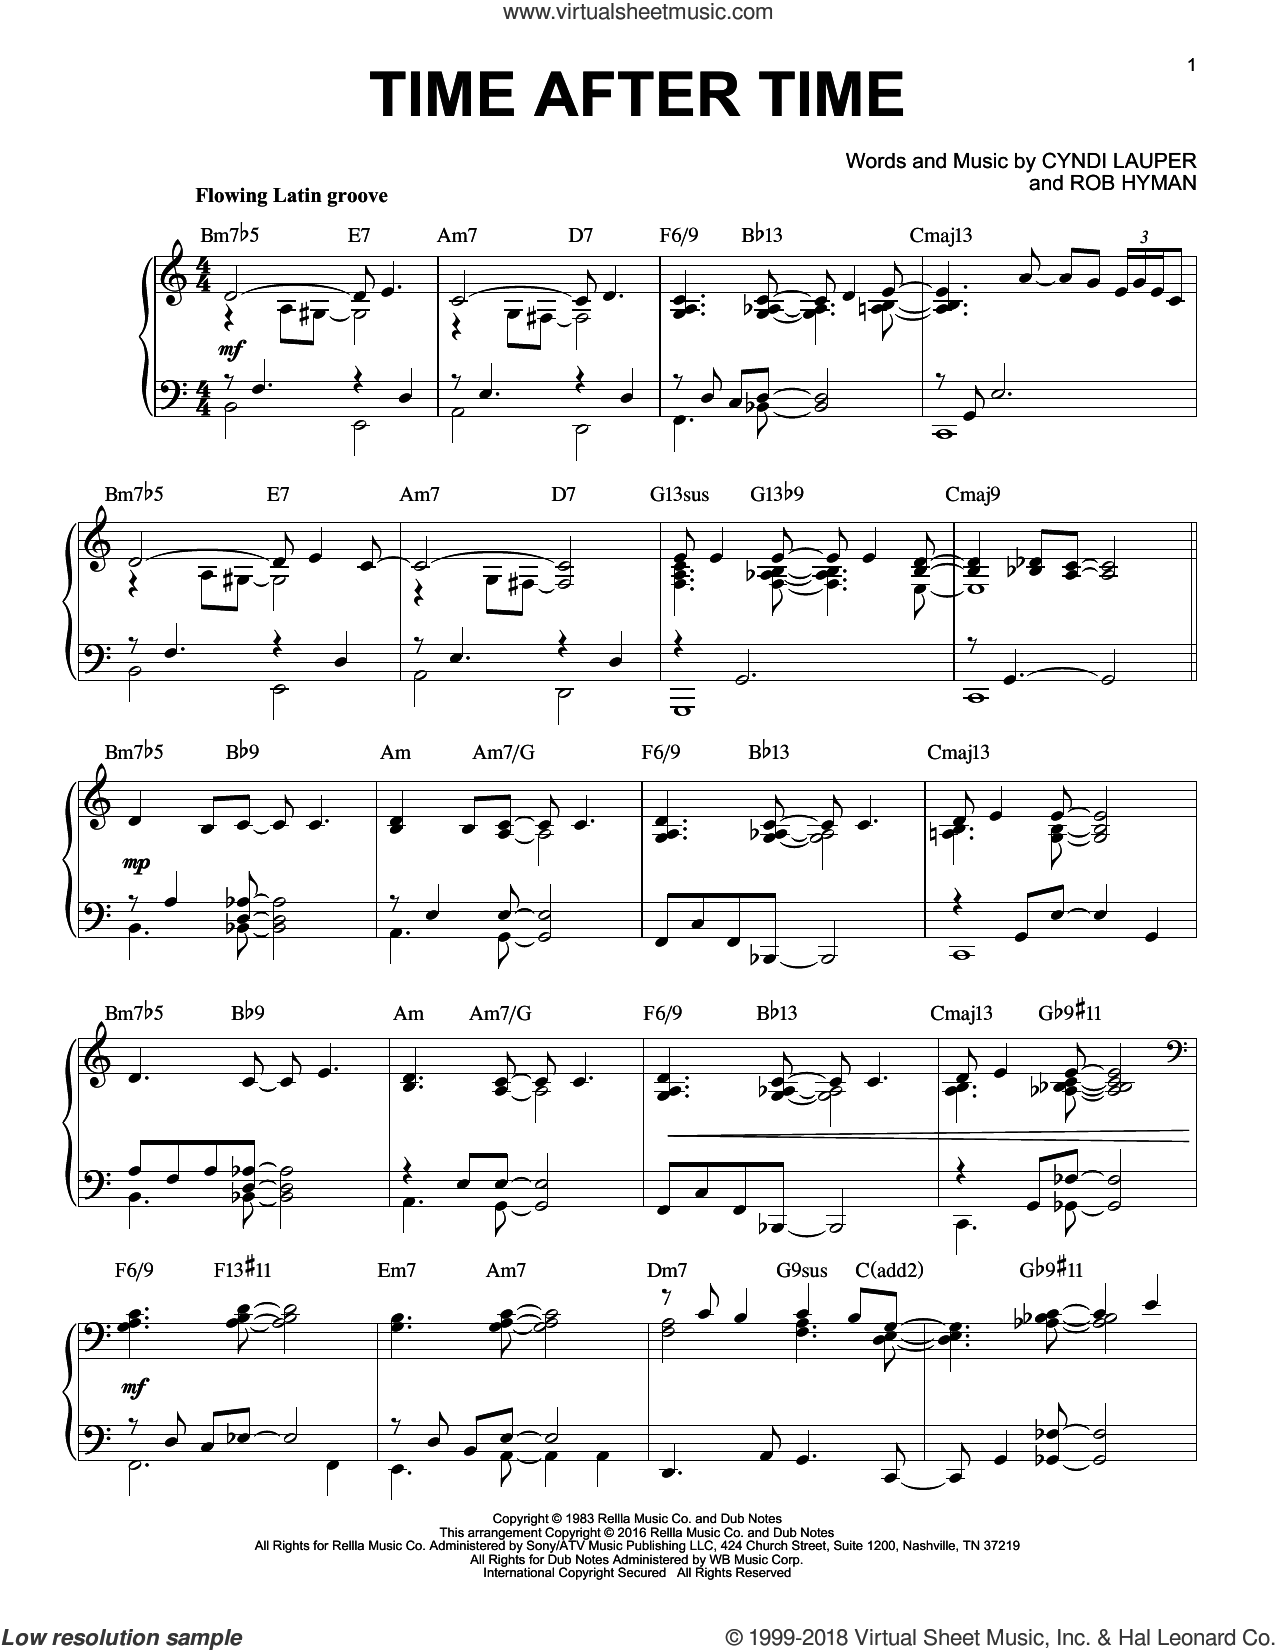 Time After Time, (intermediate) sheet music for piano solo by Cyndi Lauper, Inoj, Javier Colon and Rob Hyman, intermediate skill level